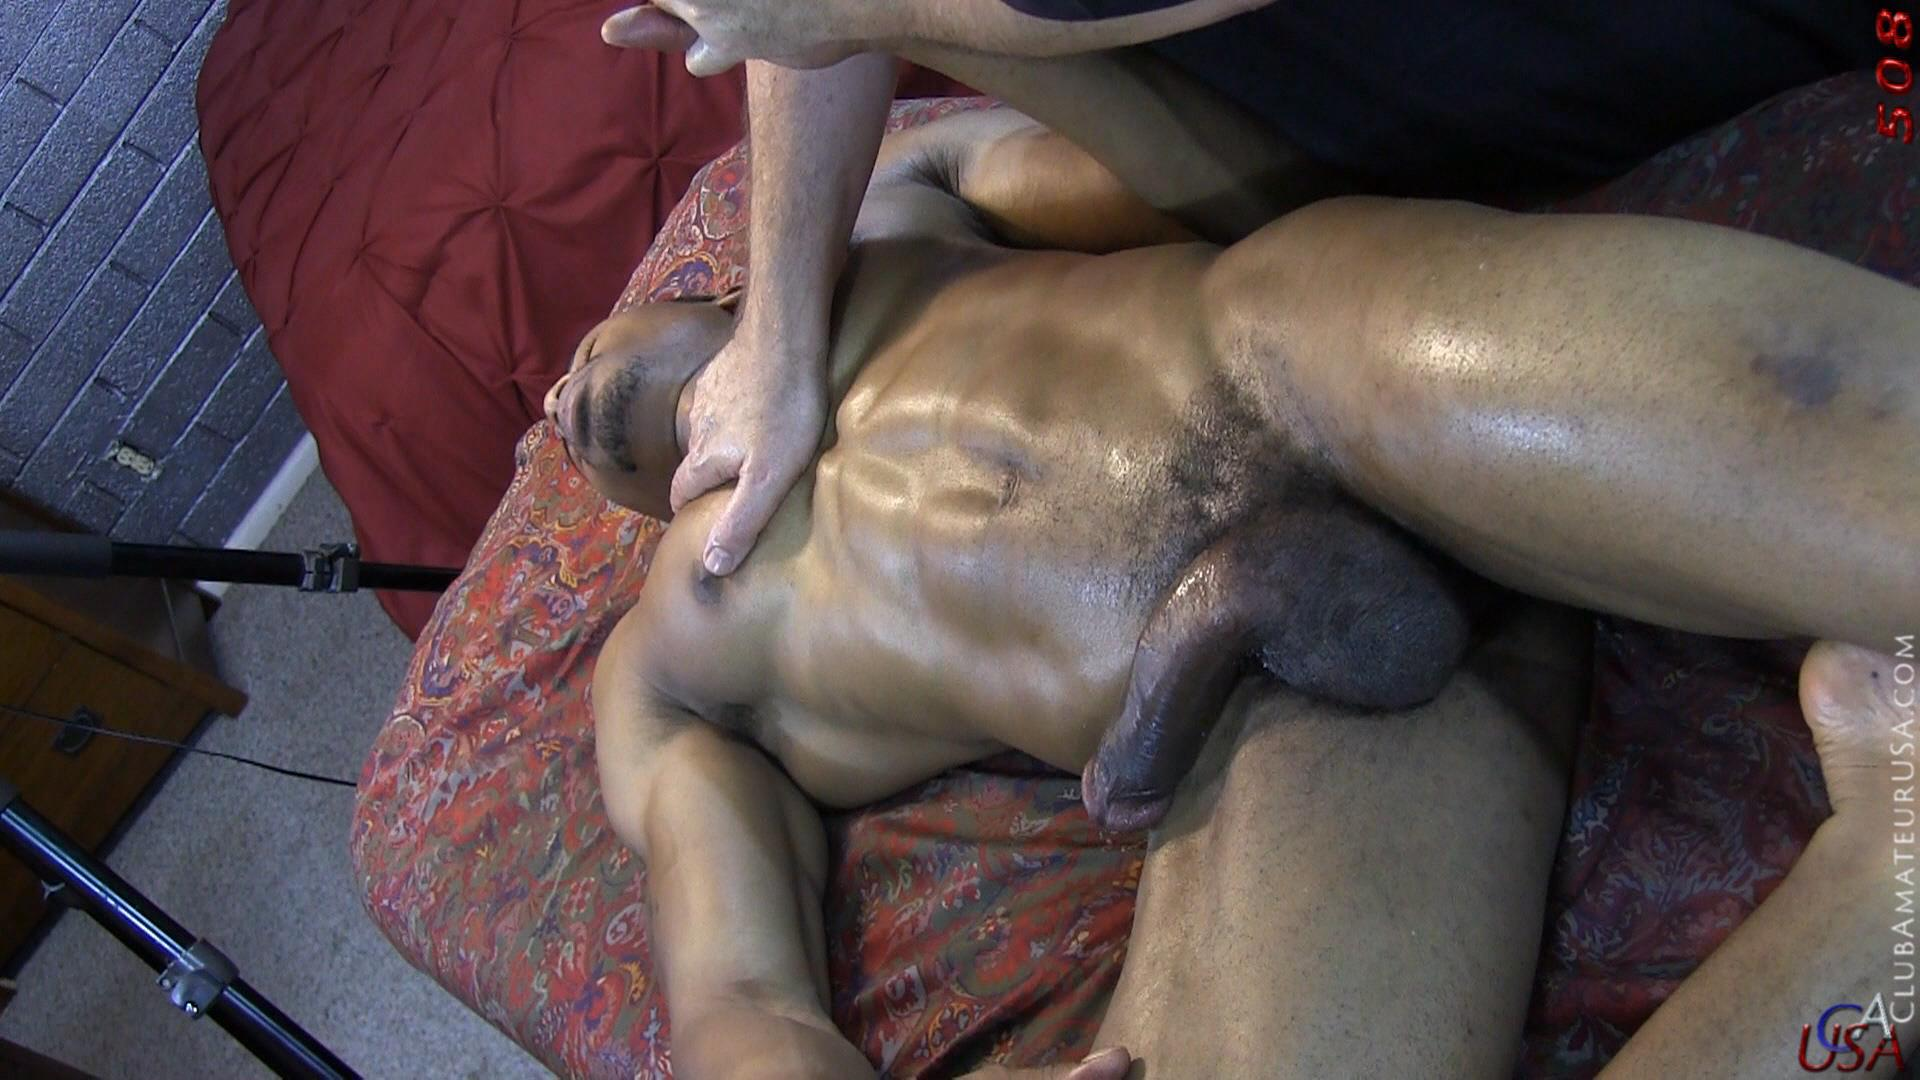 Club-Amateur-USA-Gracen-Straight-Big-Black-Cock-Getting-Sucked-With-Cum-Amateur-Gay-Porn-54 Straight Ghetto Thug Gets A Massage With A Happy Ending From A Guy